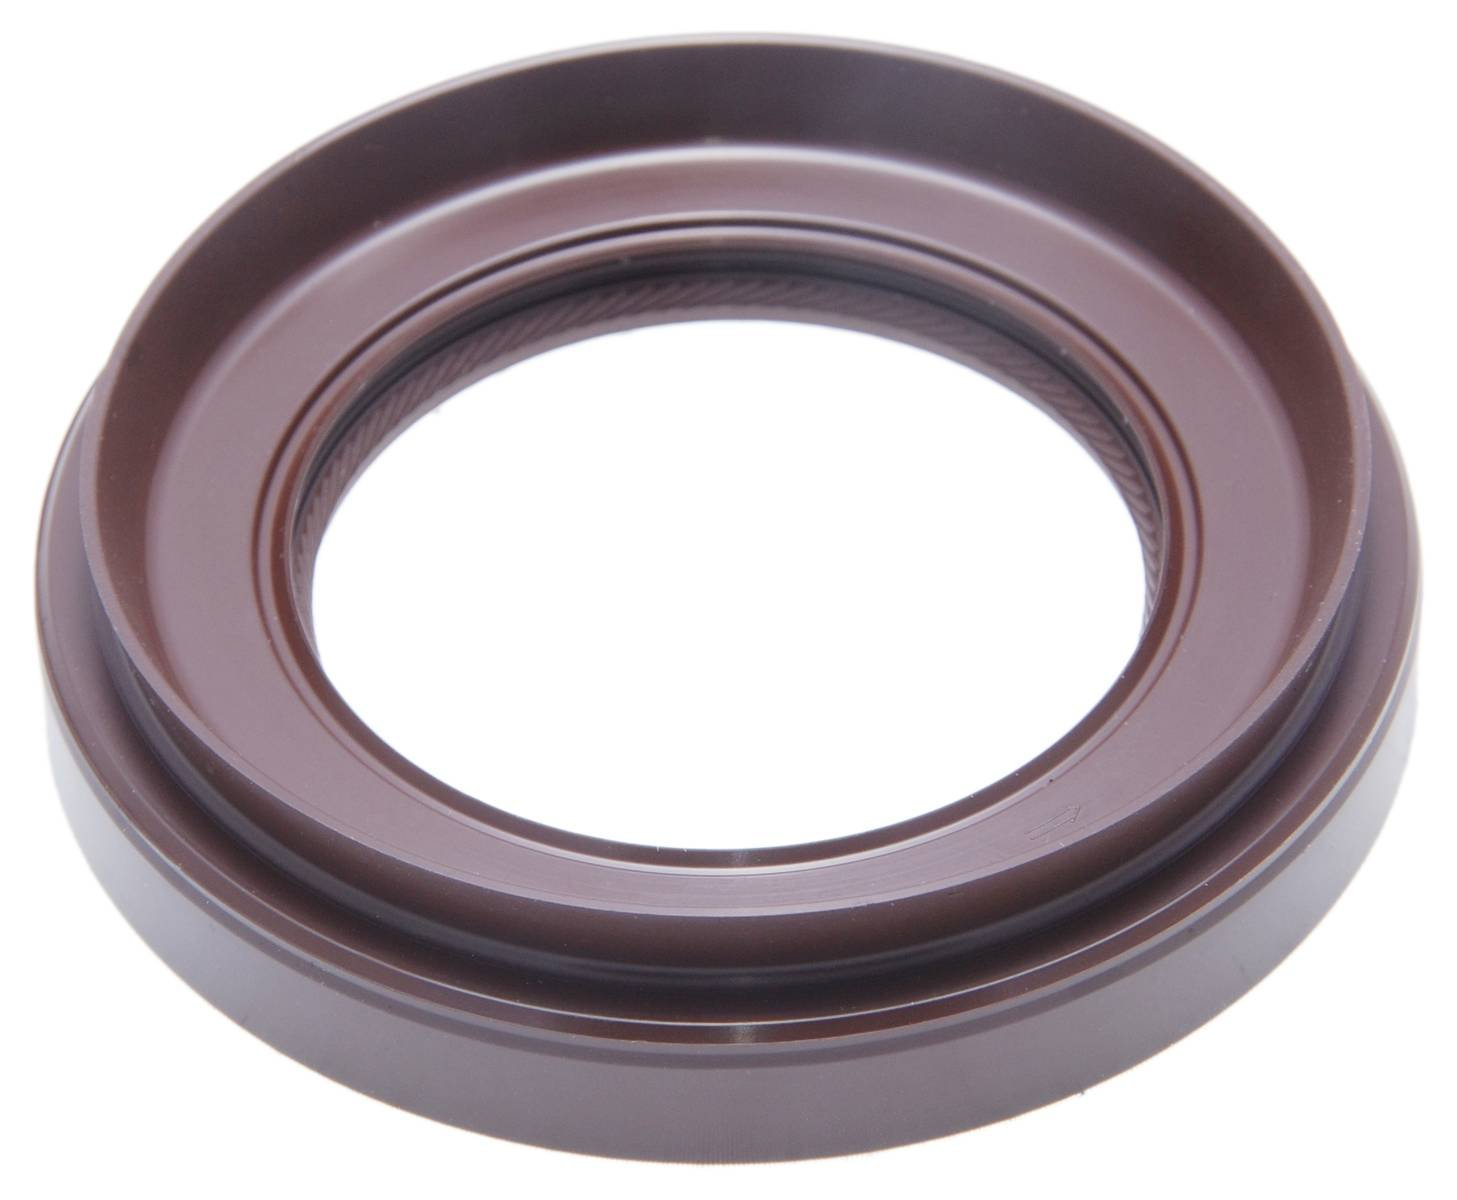 9031150029 - Oil Seal (Axle Case) (50X80X11X17.5) For Toyota - Febest